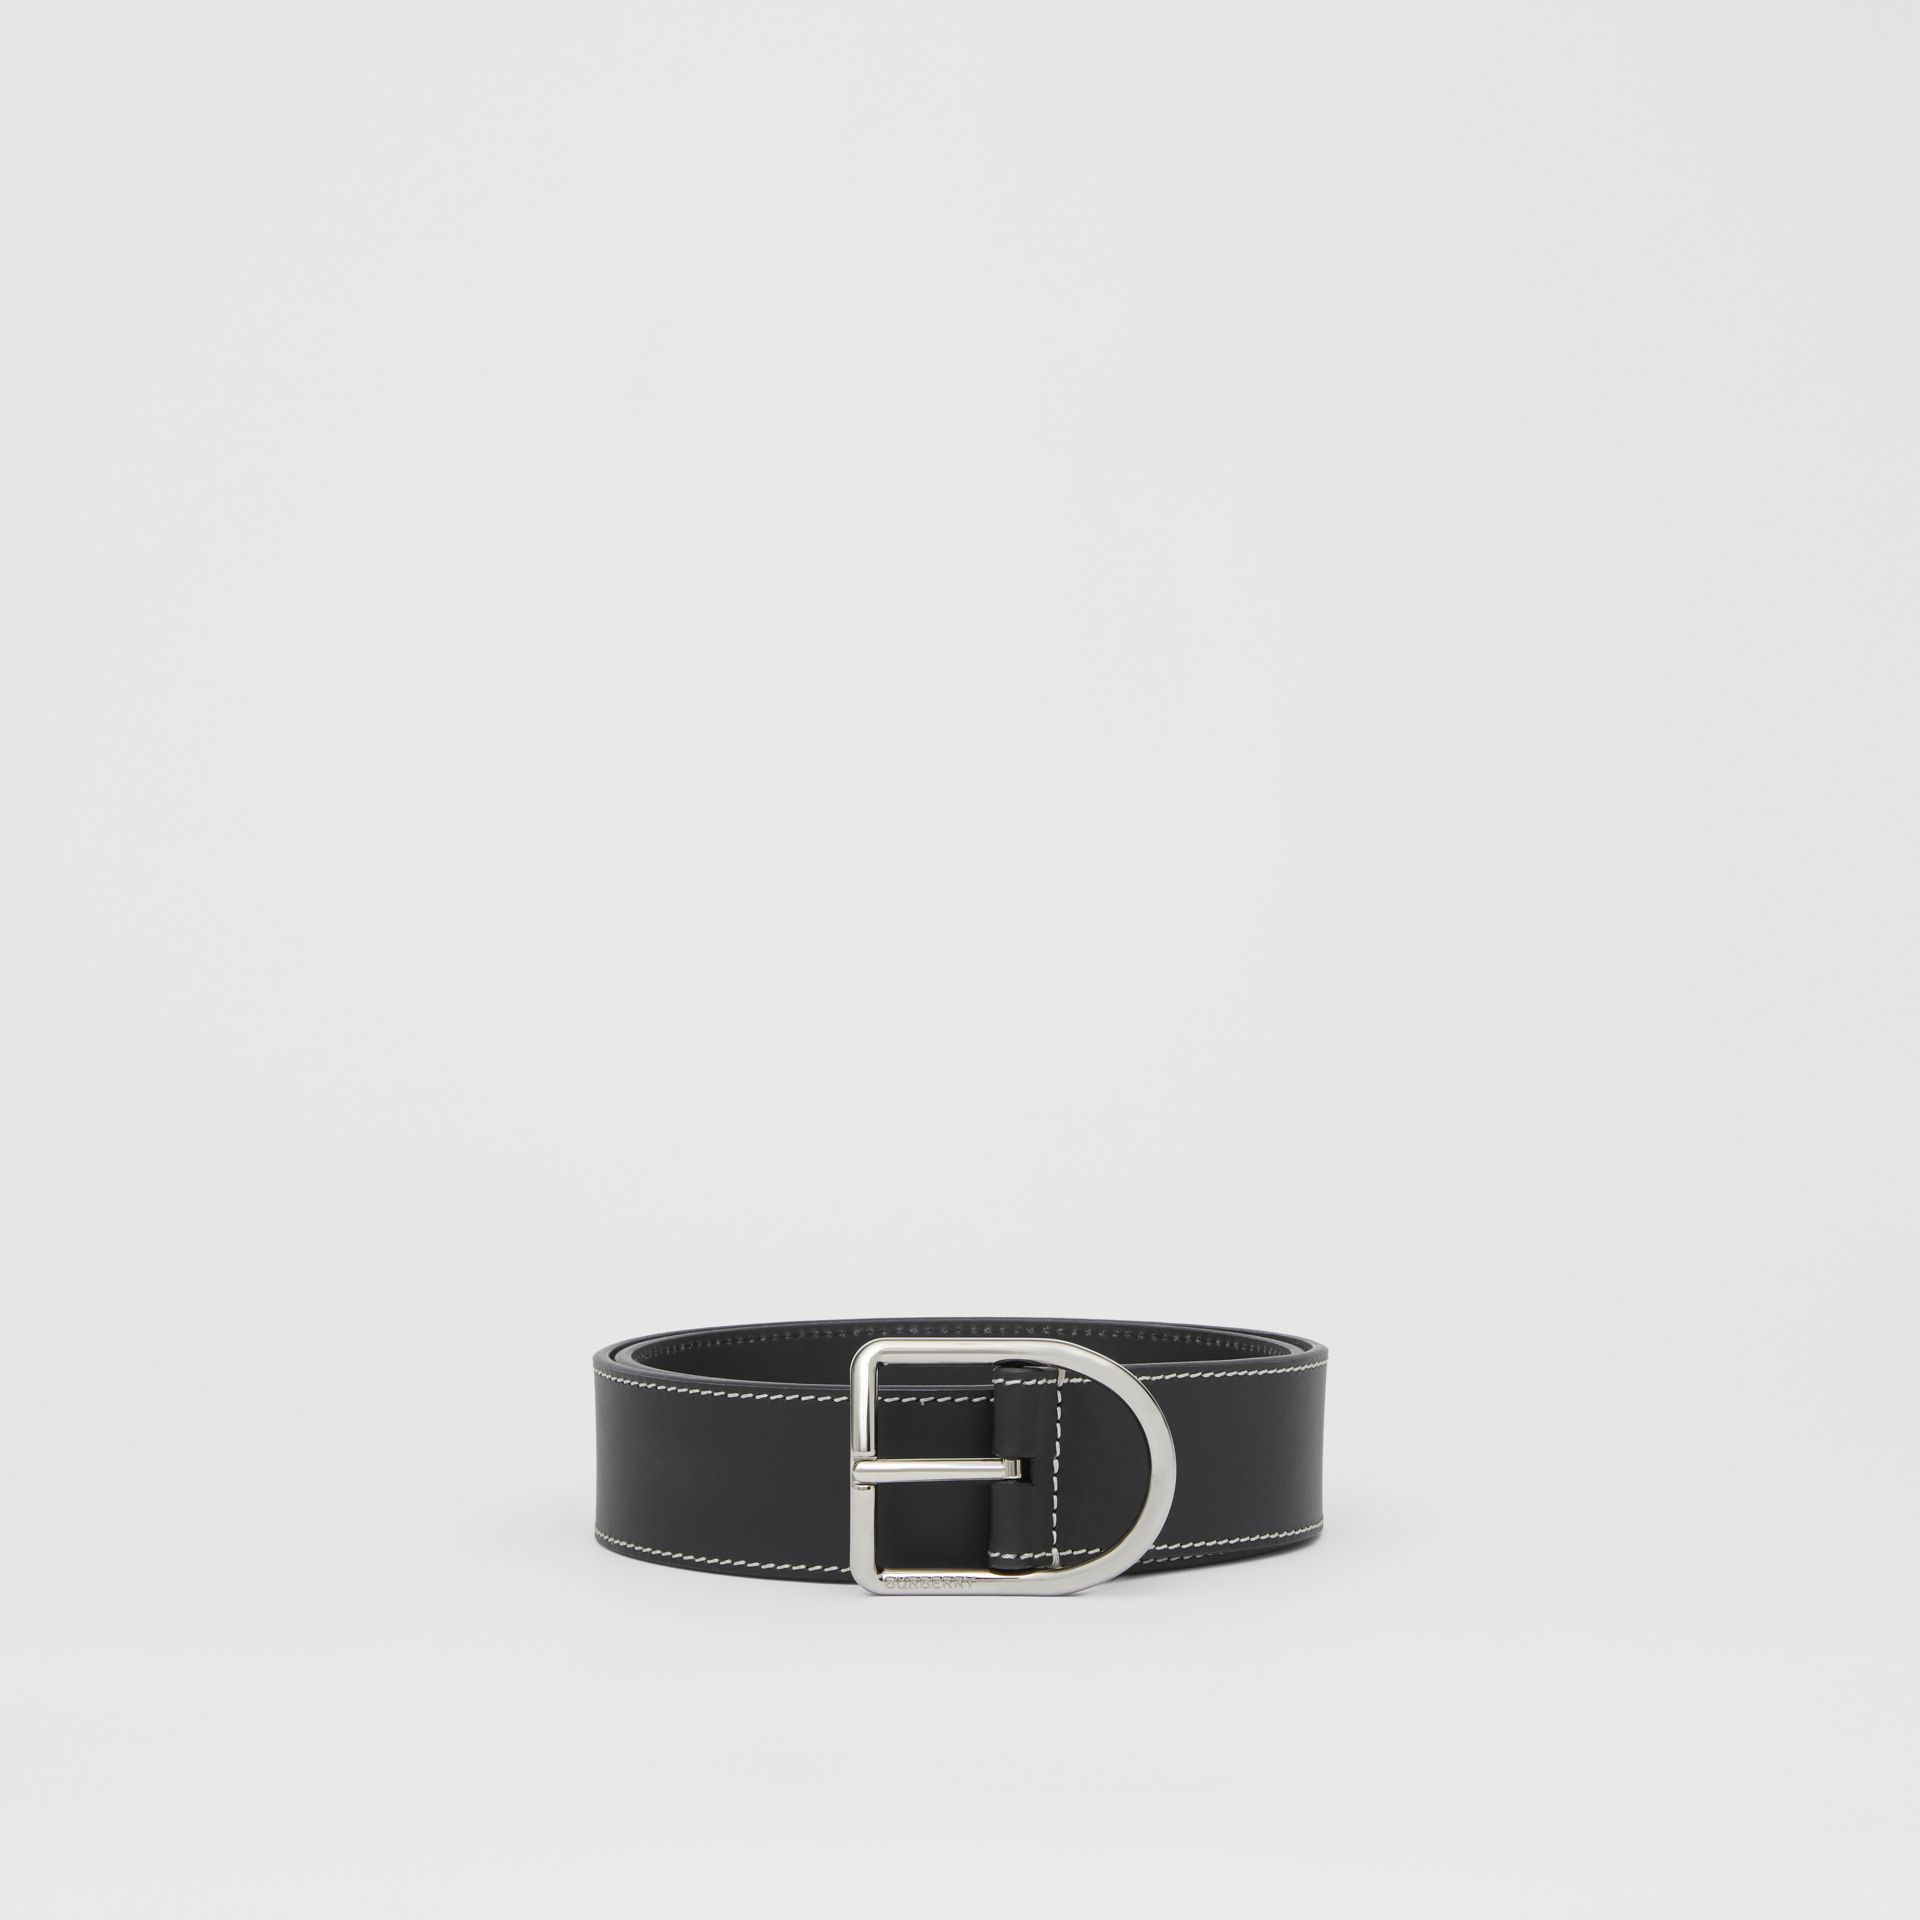 Topstitch Detail Leather Belt in Black - Men | Burberry - gallery image 3